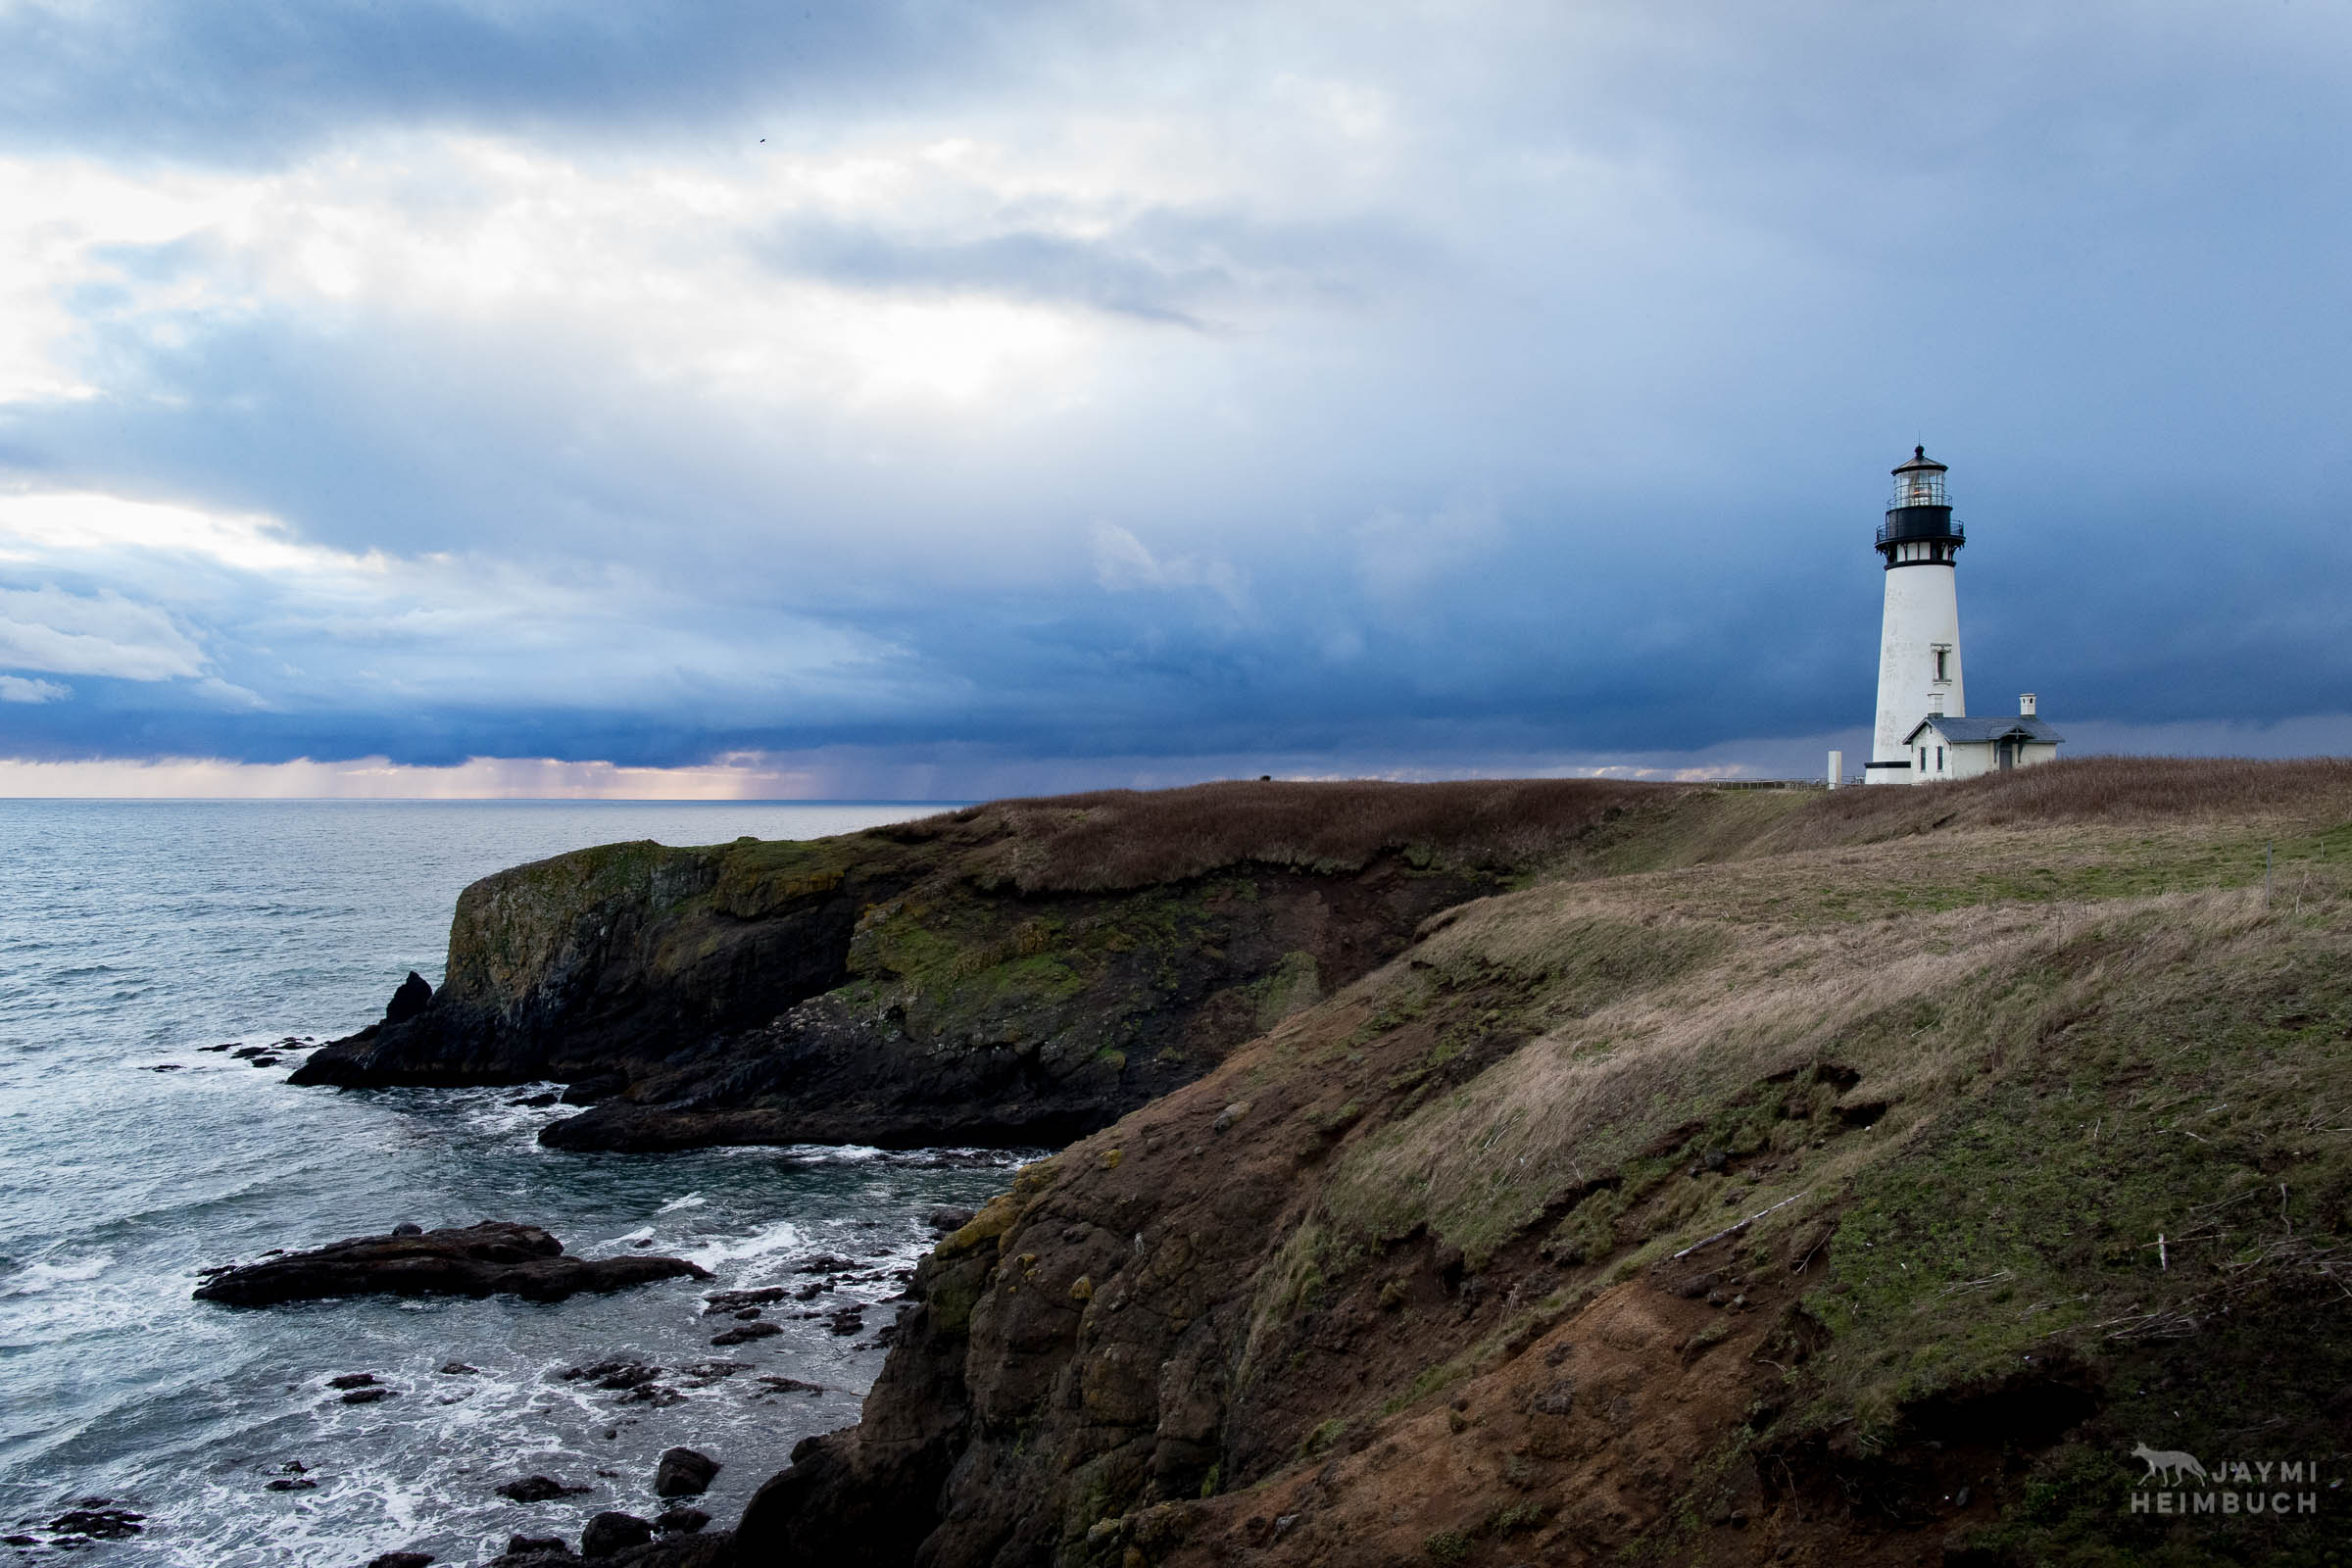 Landscape of Yaquina Head Lighthouse at Yaquina Head Outstanding Natural Area, Newport, Oregon